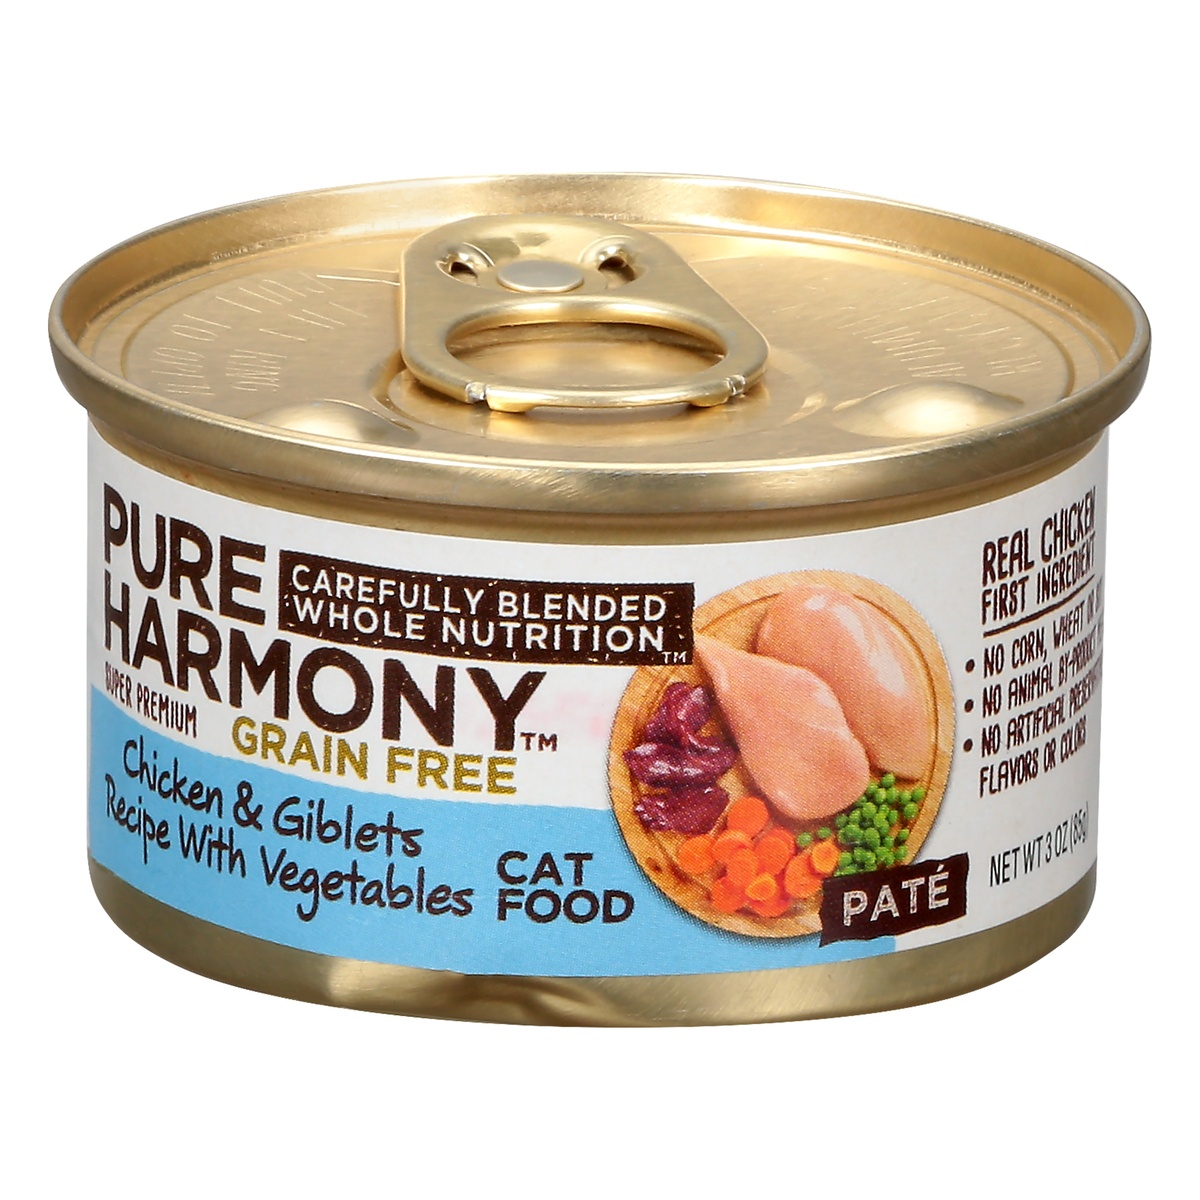 slide 3 of 9, Pure Harmony Super Premium Grain Free Pate Cat Food Chicken Giblets with Vegetables,